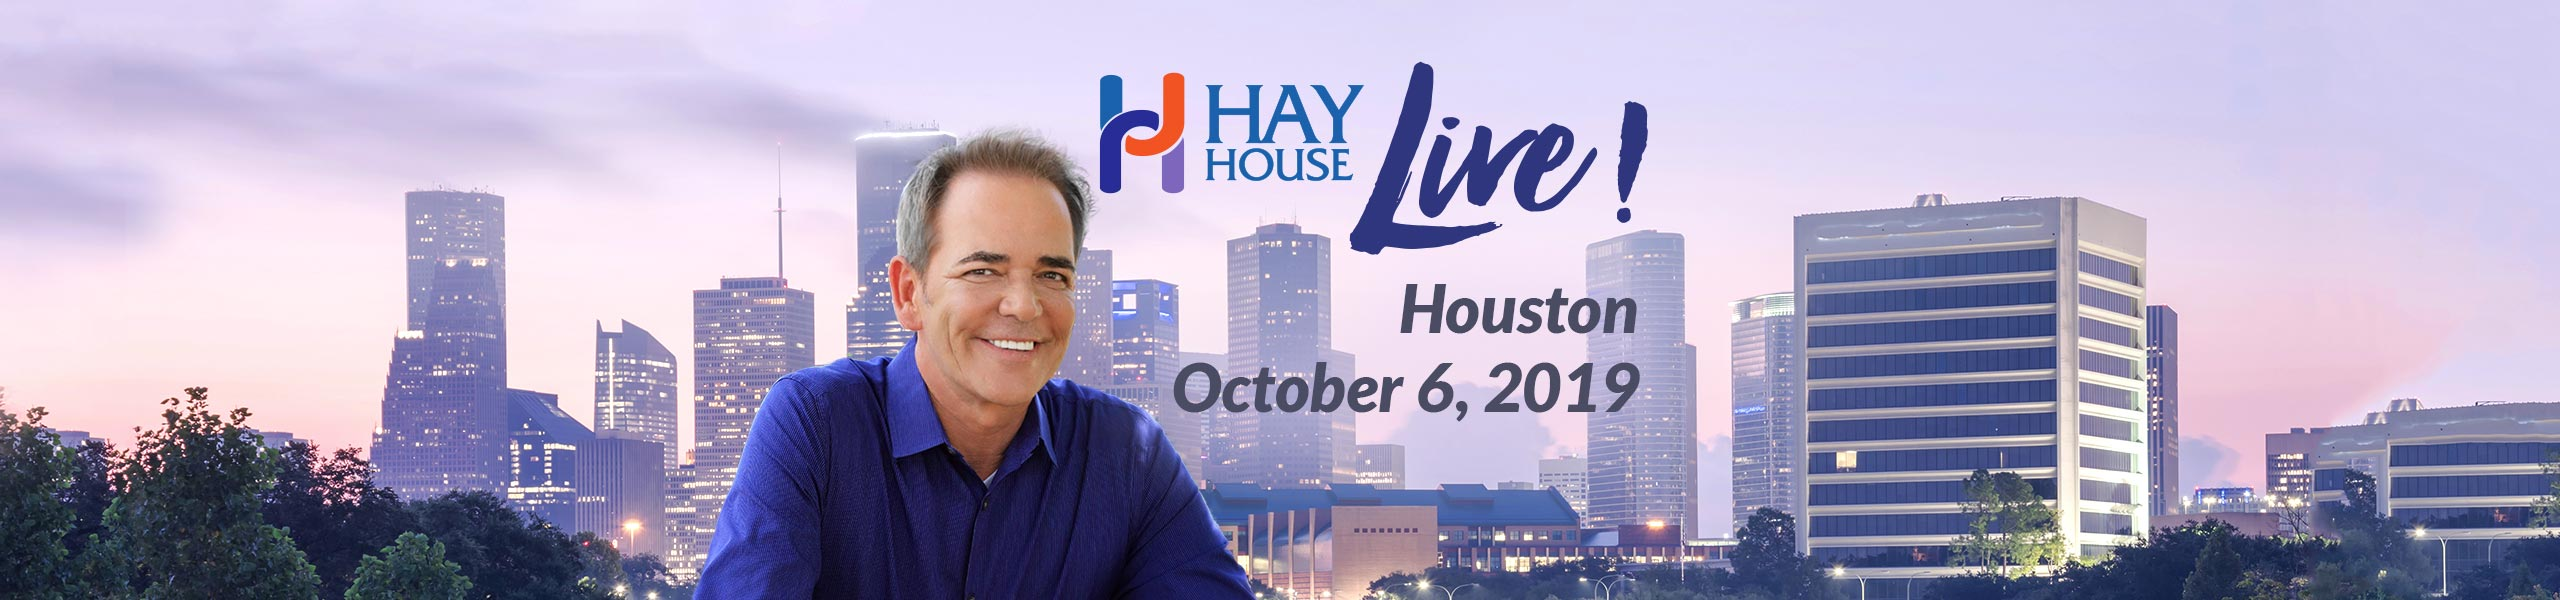 Hay House Live! Houston 2019 - John Holland